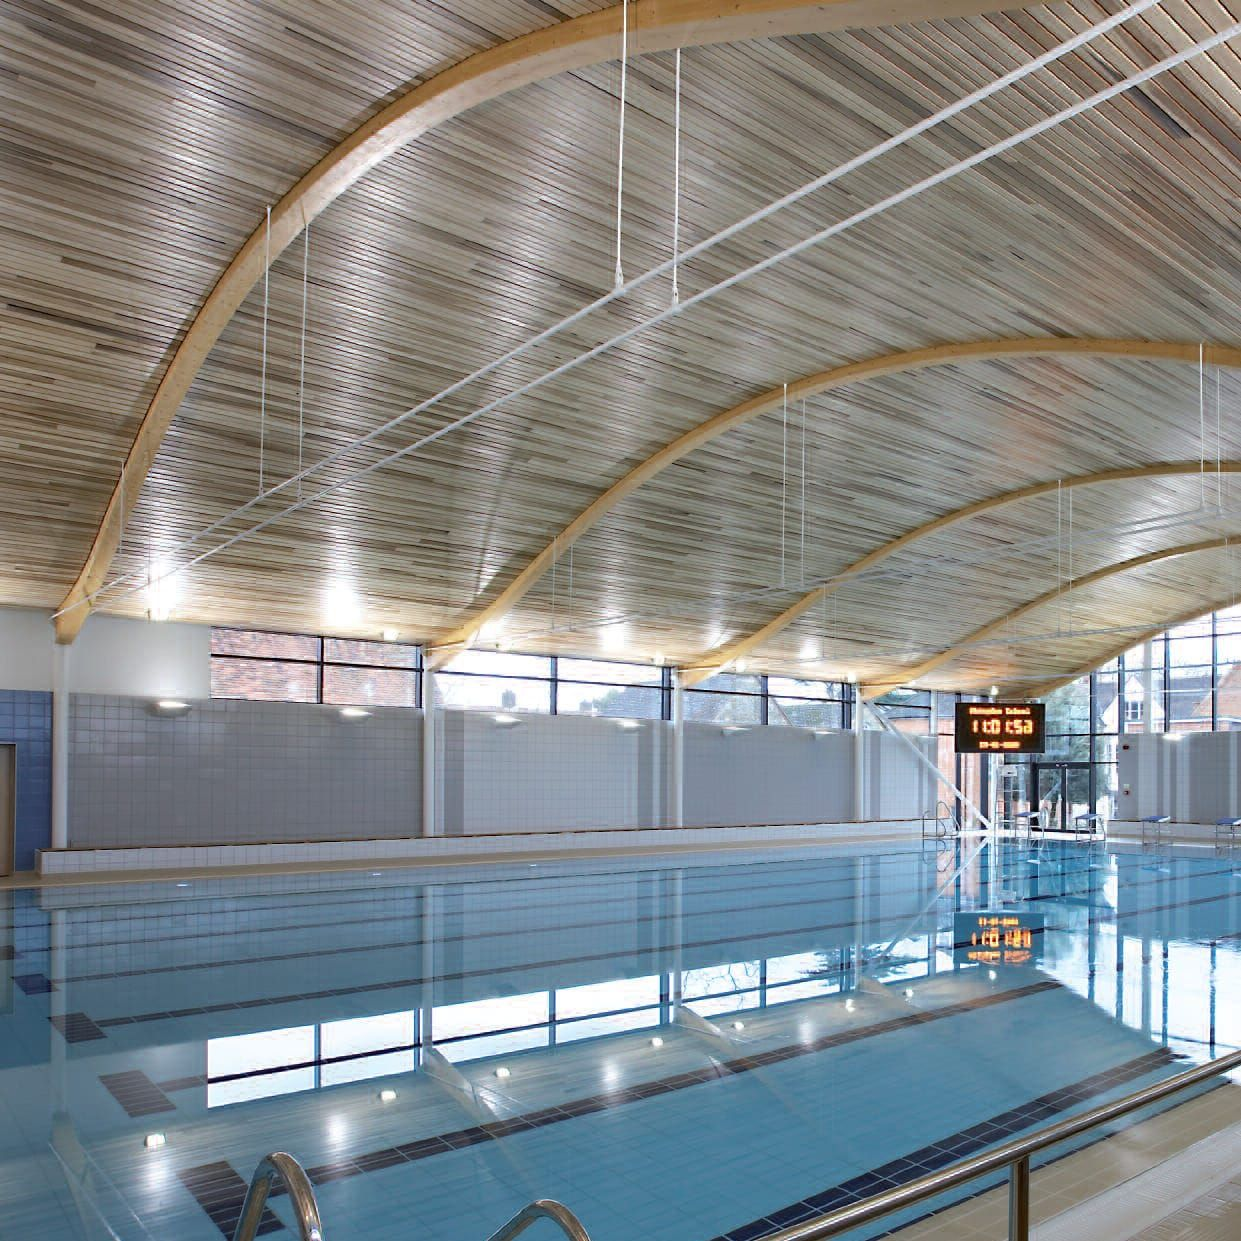 Wooden suspended ceiling panel acoustic for swimming pools linear open hunter douglas for Indoor swimming pool ceiling materials